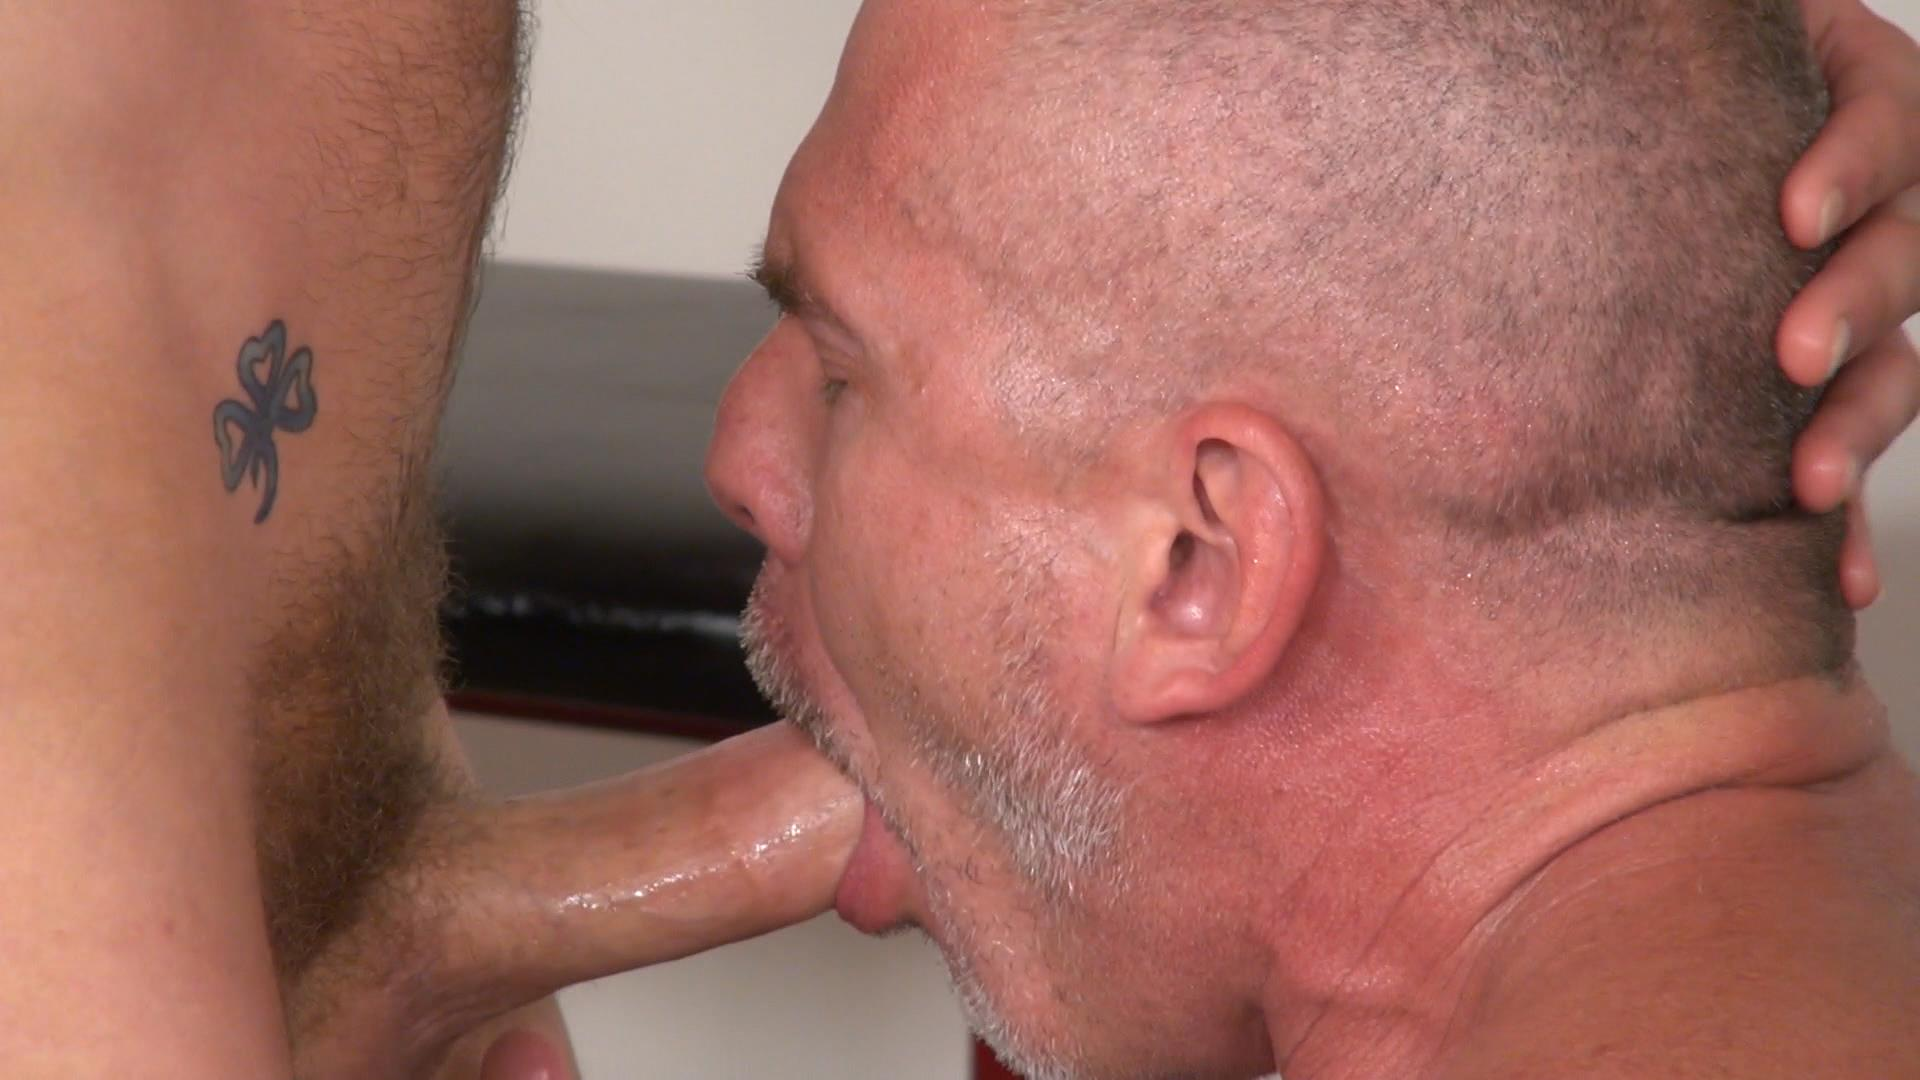 Raw-and-Rough-Sam-Dixon-and-Blue-Bailey-Daddy-And-Boy-Flip-Flip-Bareback-Fucking-Amateur-Gay-Porn-01 Blue Bailey Flip Flop Barebacking With A Hung Daddy